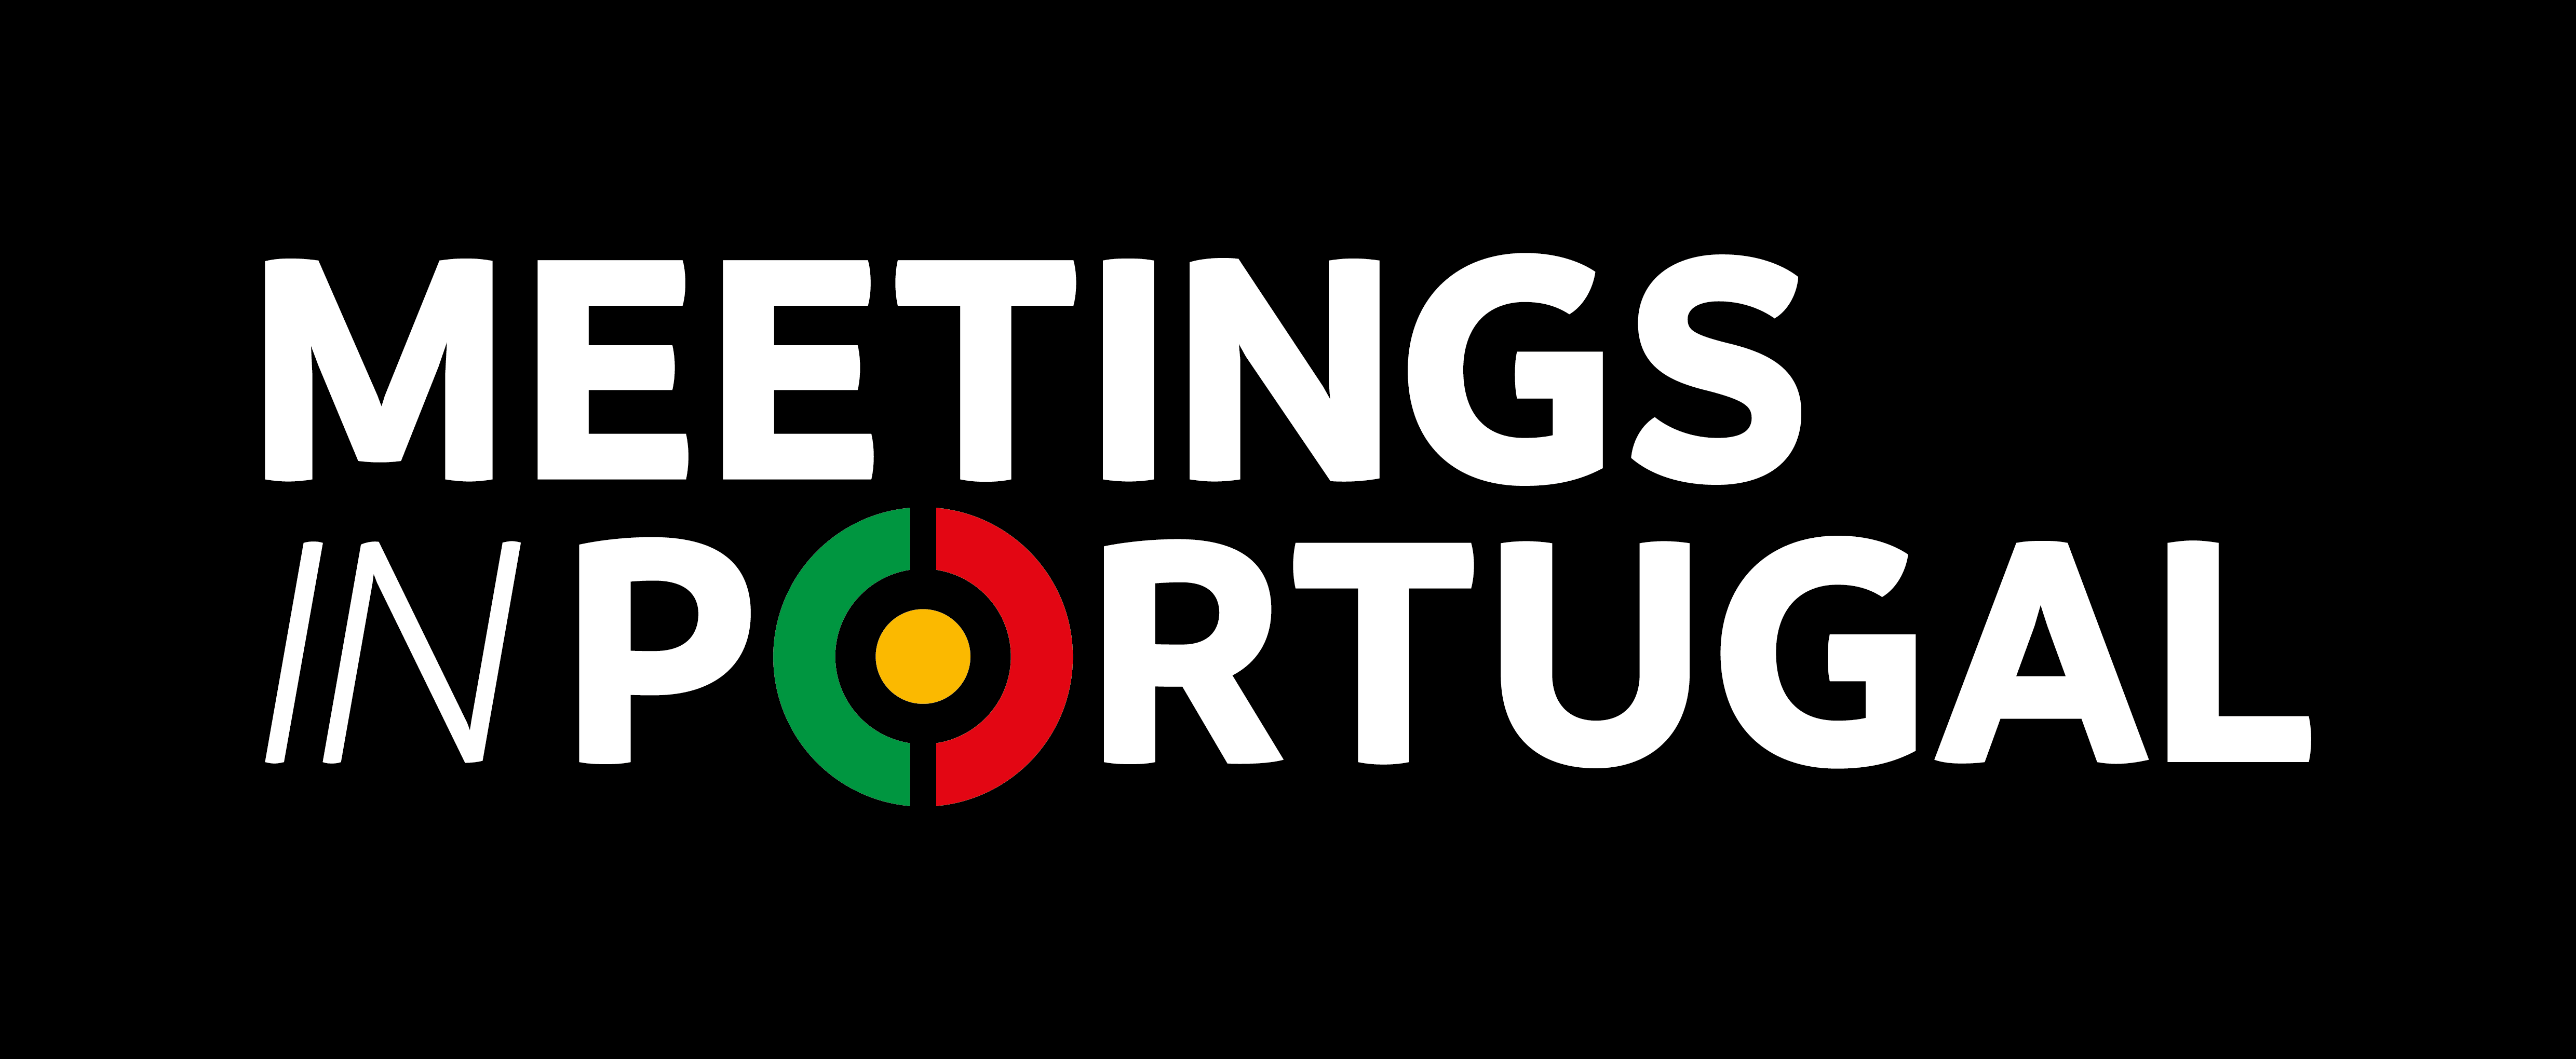 MEETINGS IN PORTUGAL